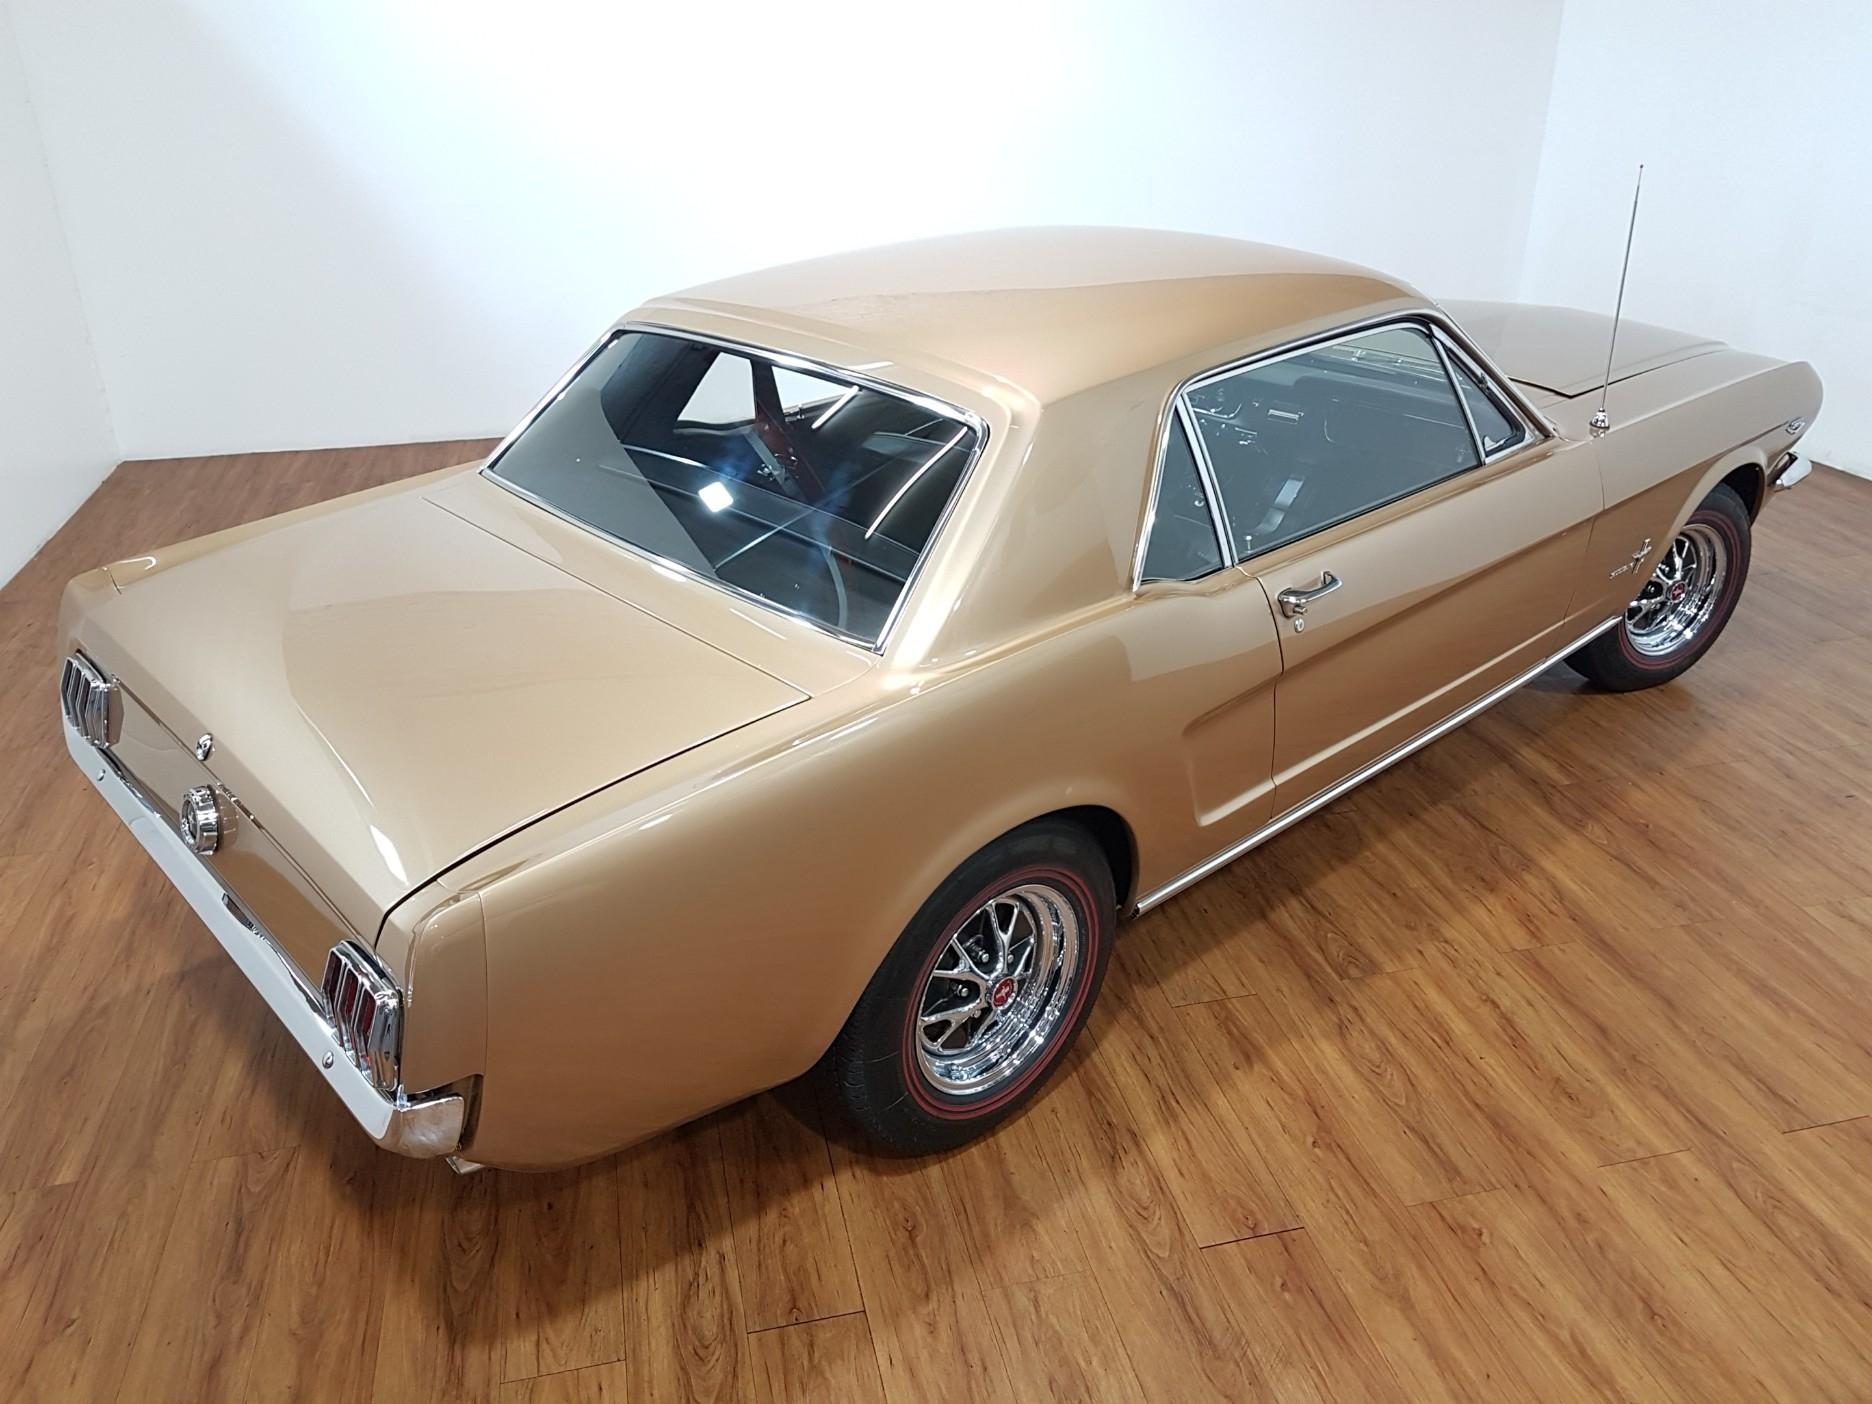 1965 Ford Mustang K-code 289 Hipo 4 Speed Manual Coupe